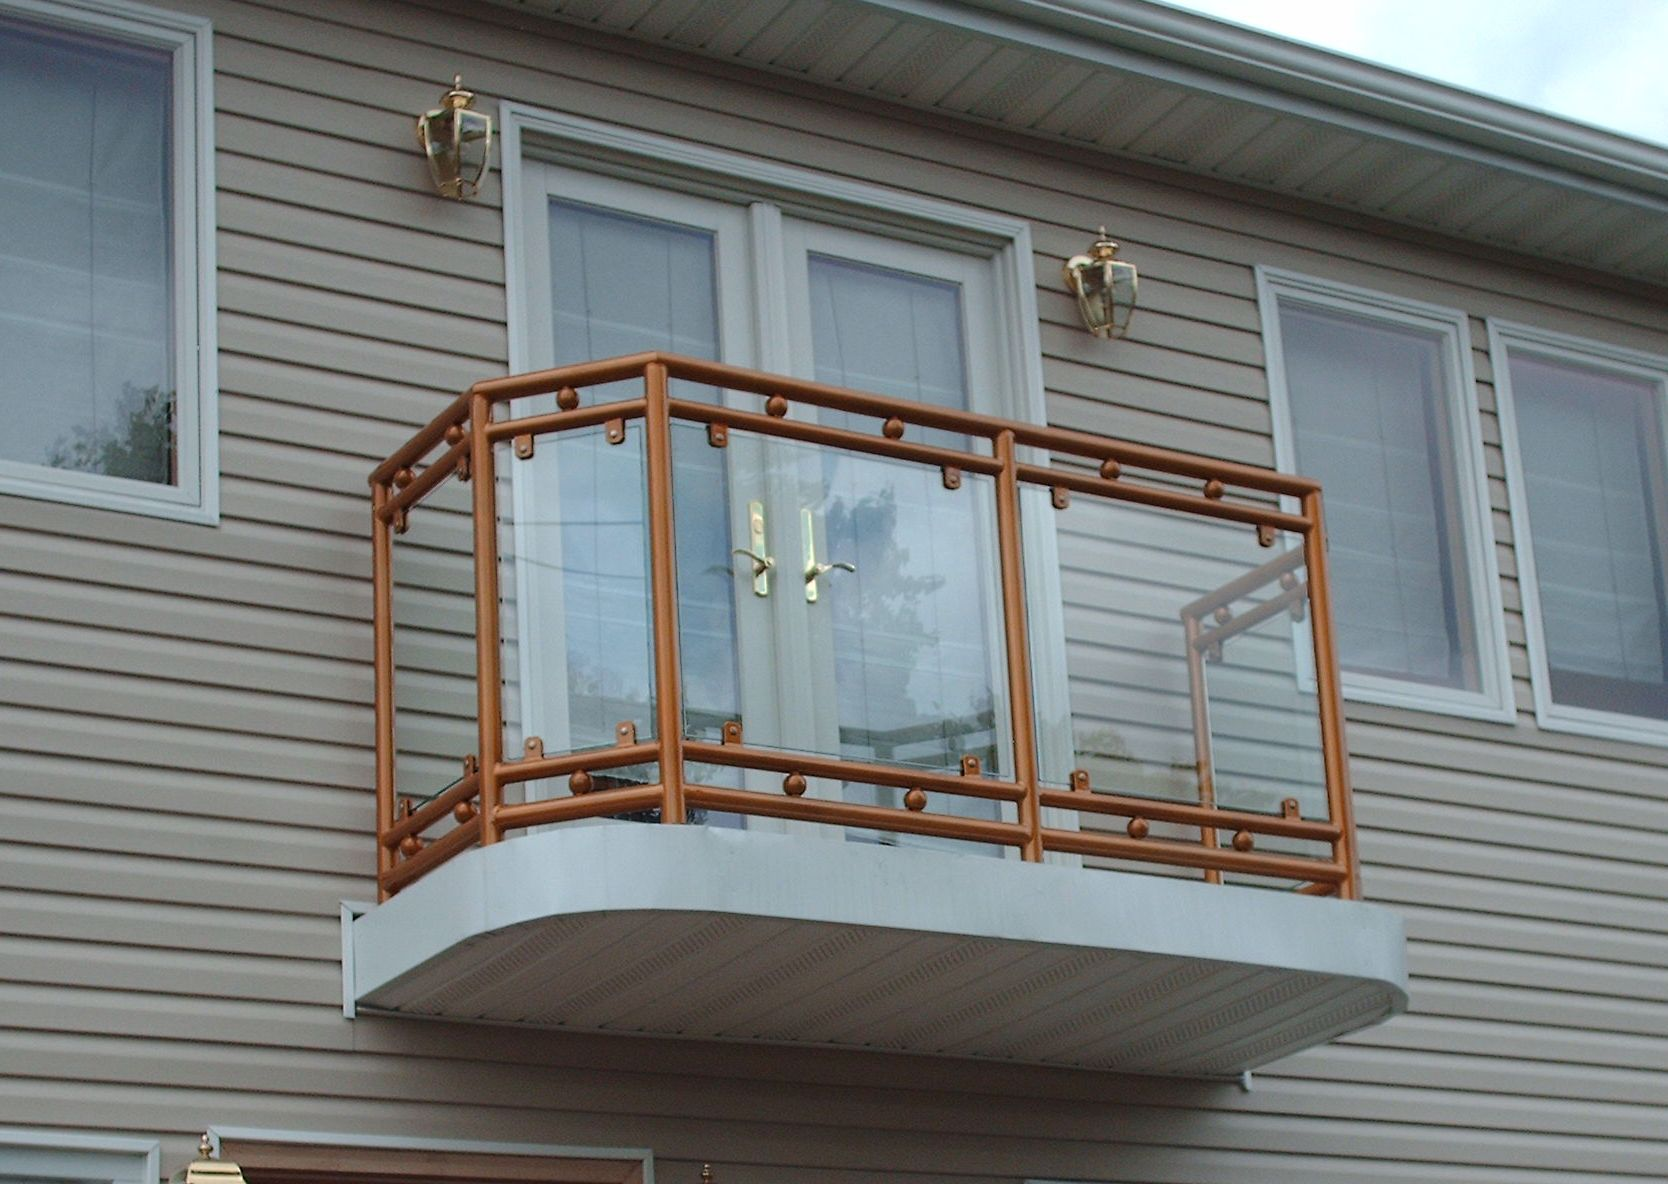 Guardian gate balcony balconies pinterest balcony for Apartment balcony floor covering